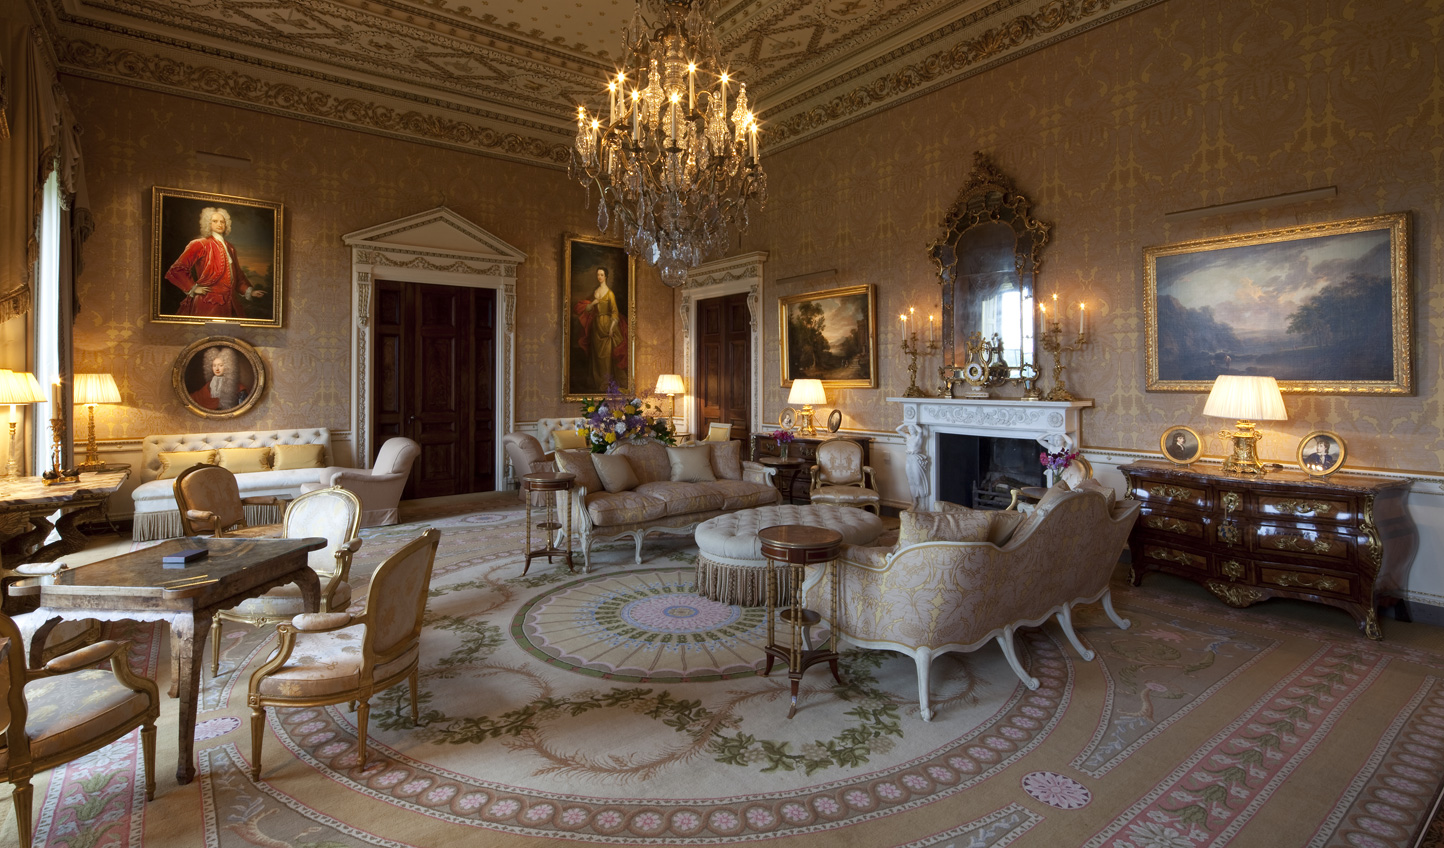 Relax into the plush drawing room with a whisky and good book in hand